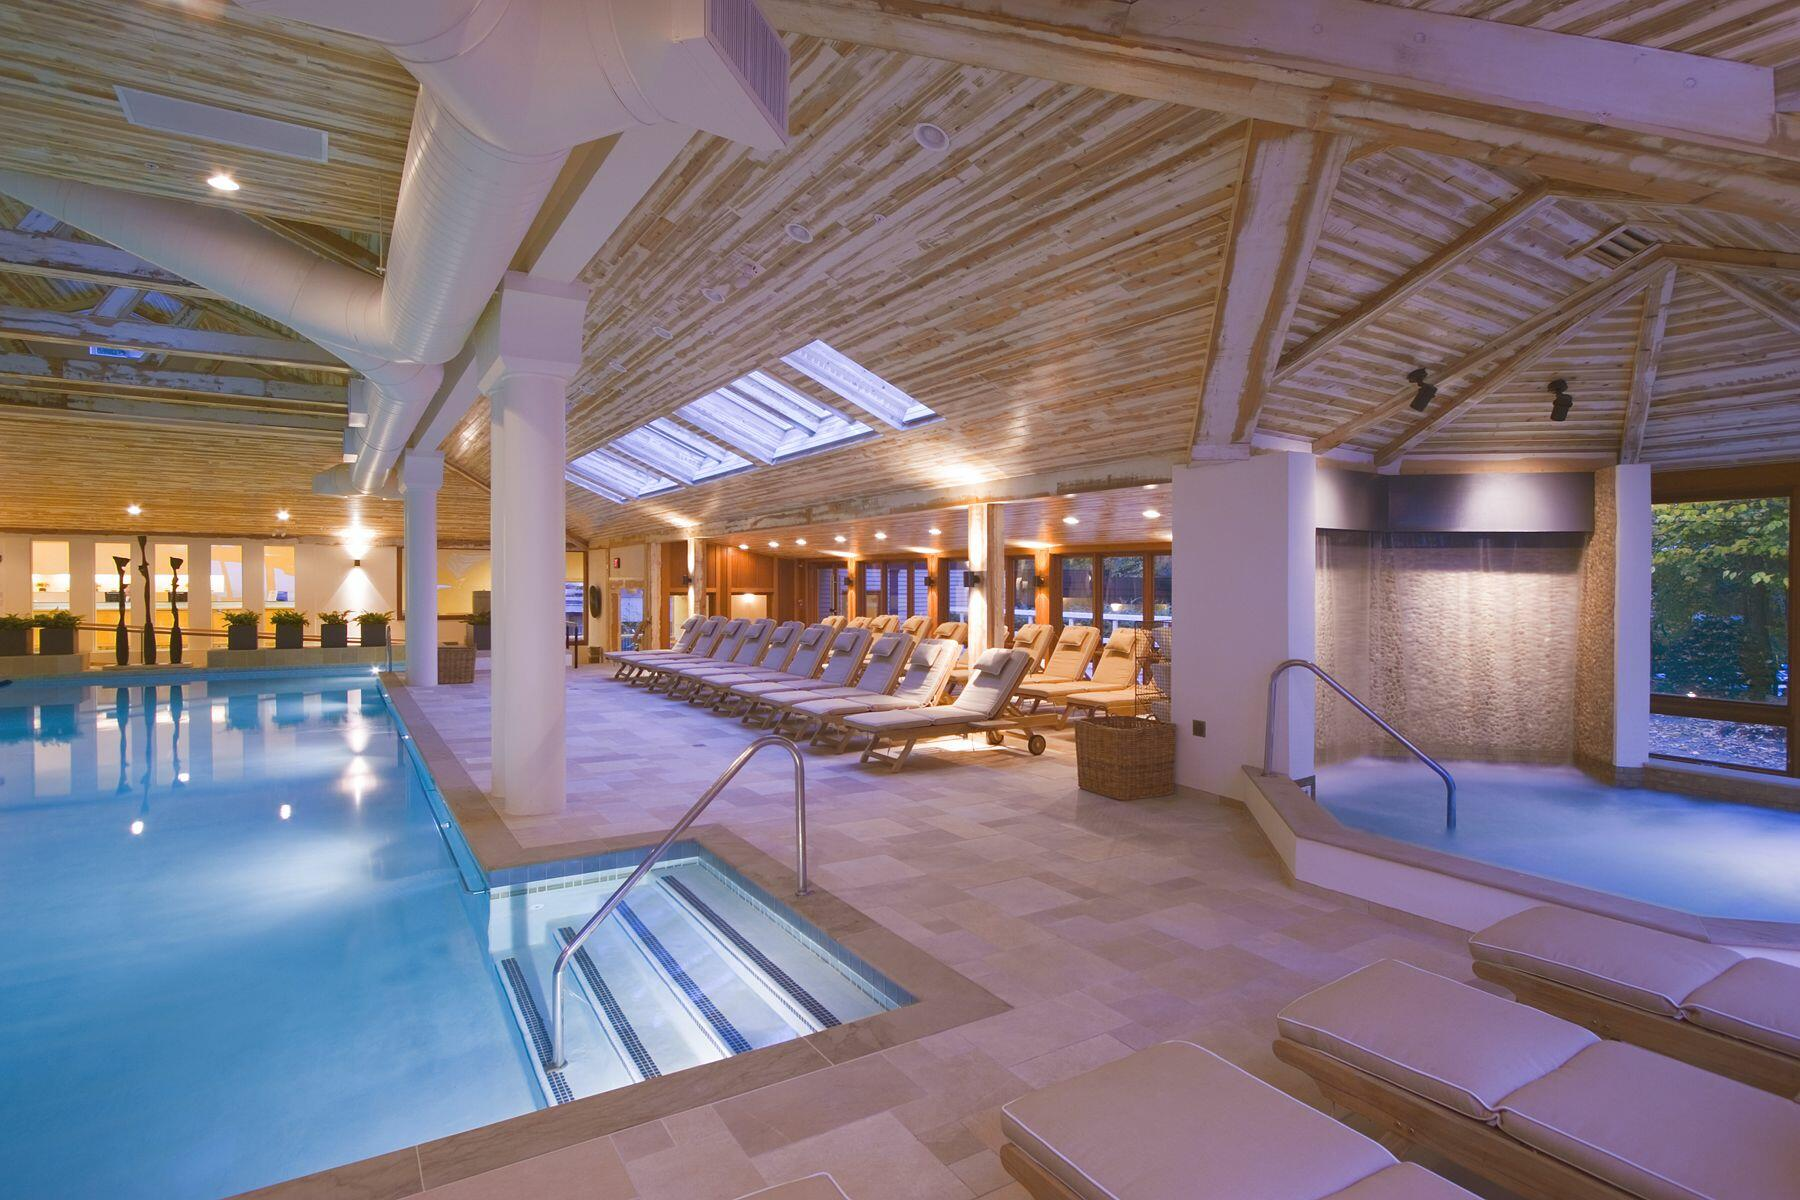 Indoor spa pool and waterfall.